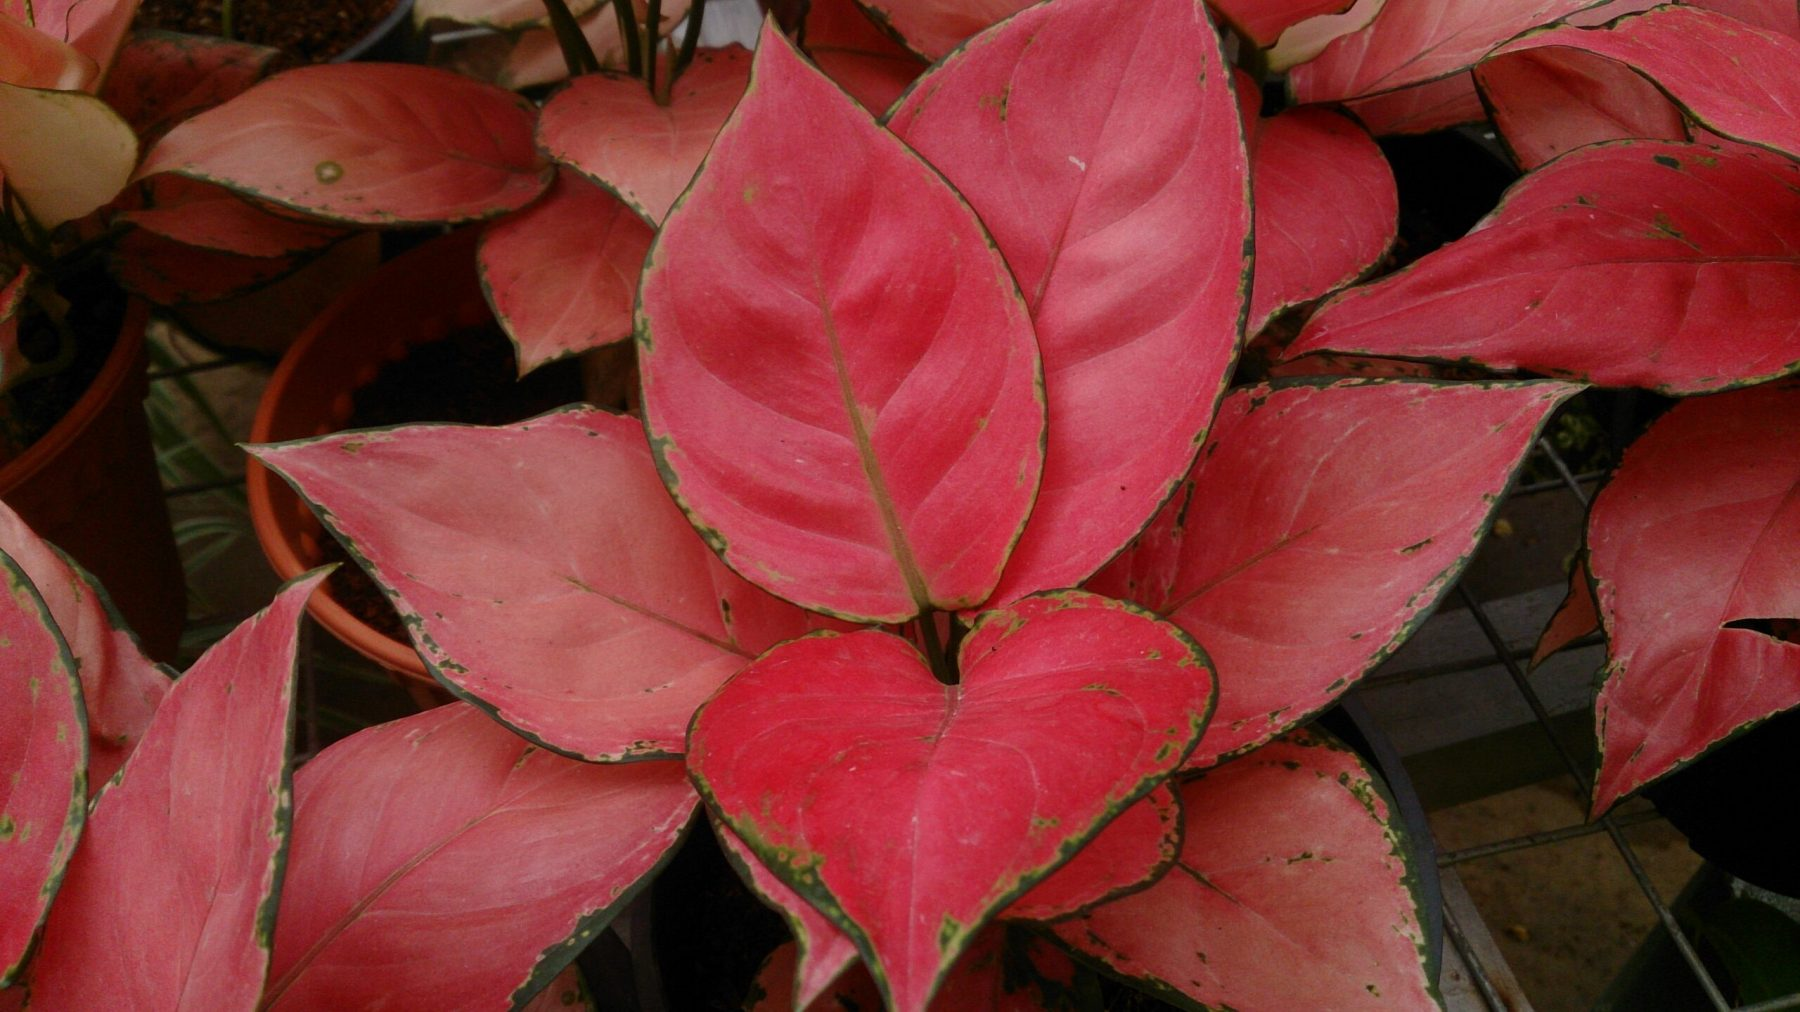 Aglaonema_sp_red_leaves-scaled